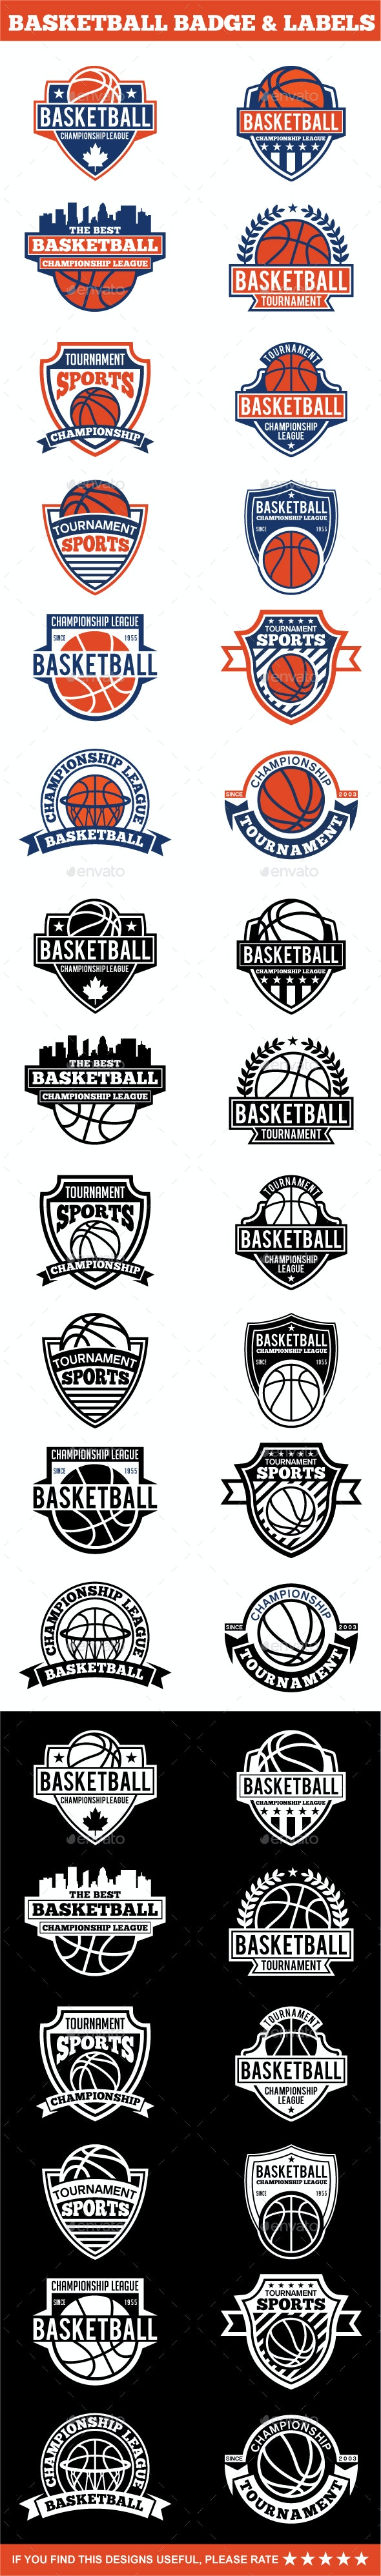 Basketball  Badges & Stickers Vol1 - Badges & Stickers Web Elements